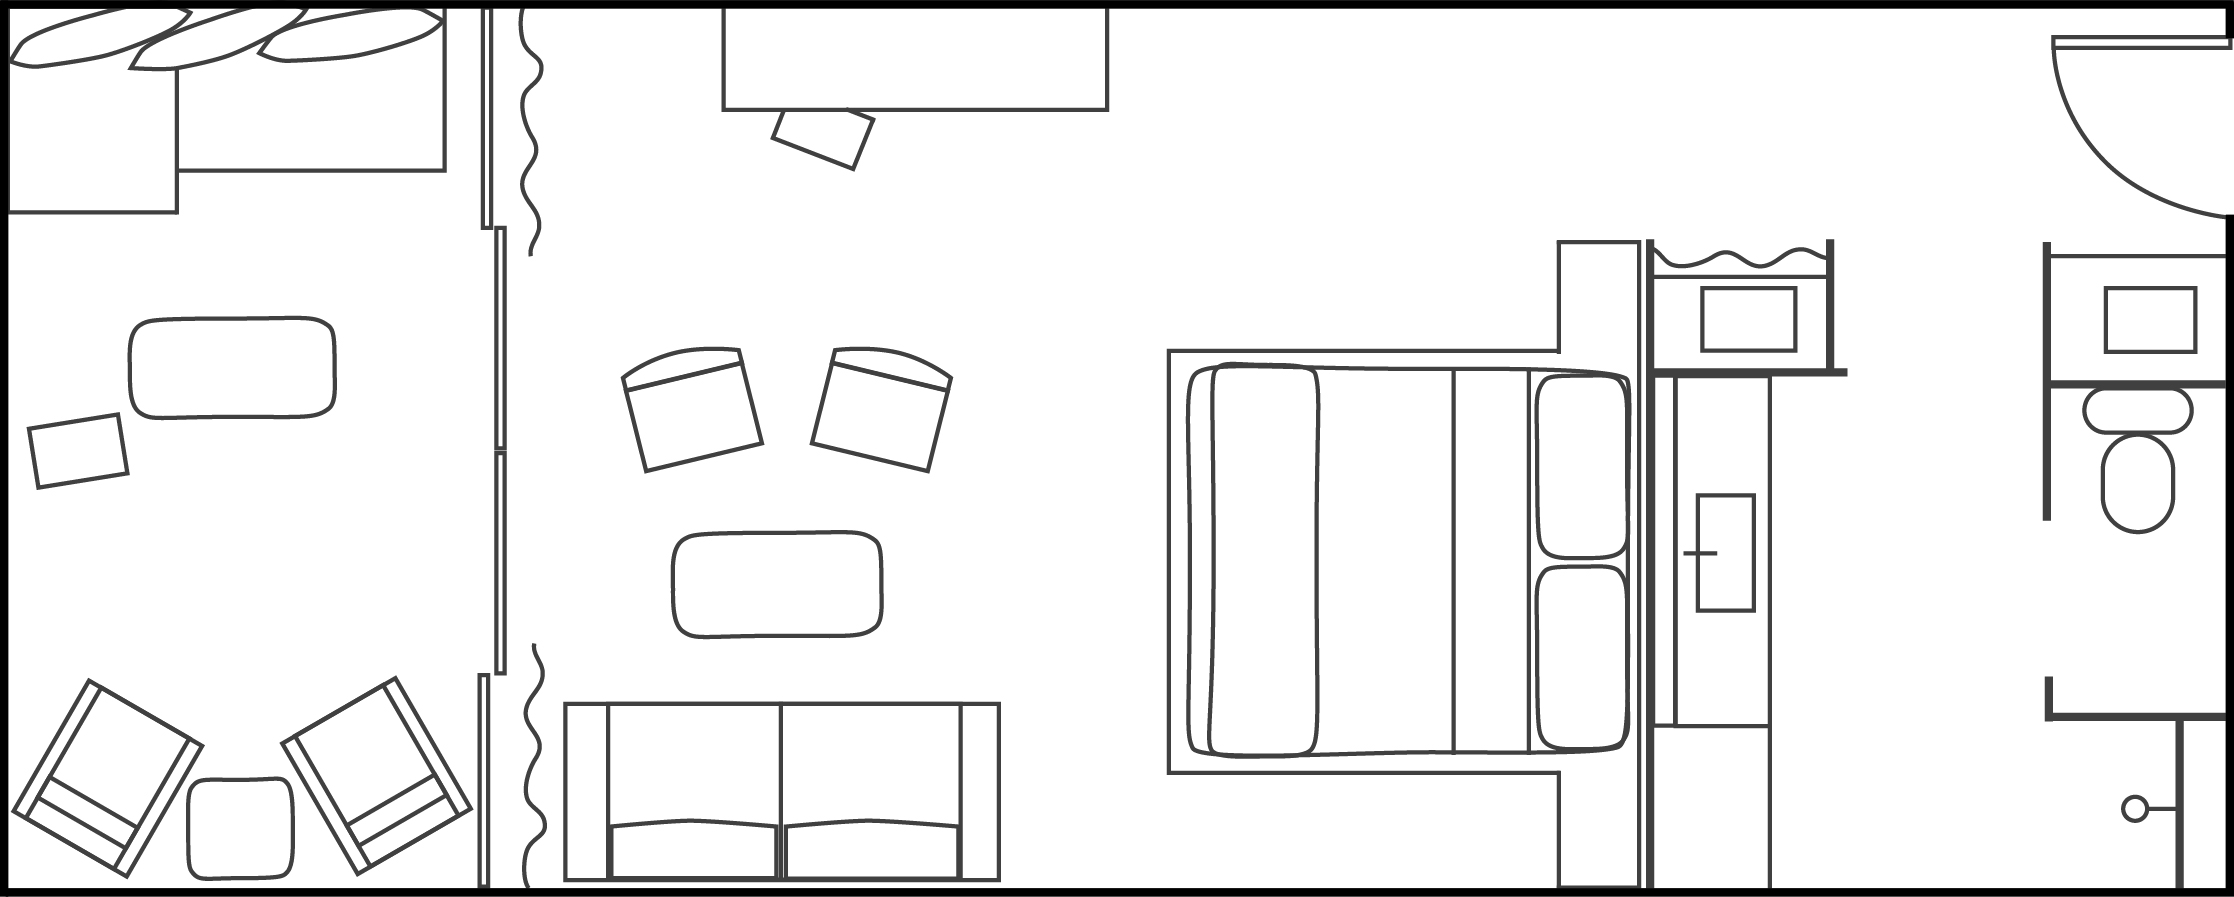 Ocean King Hotel Room Floor-plan